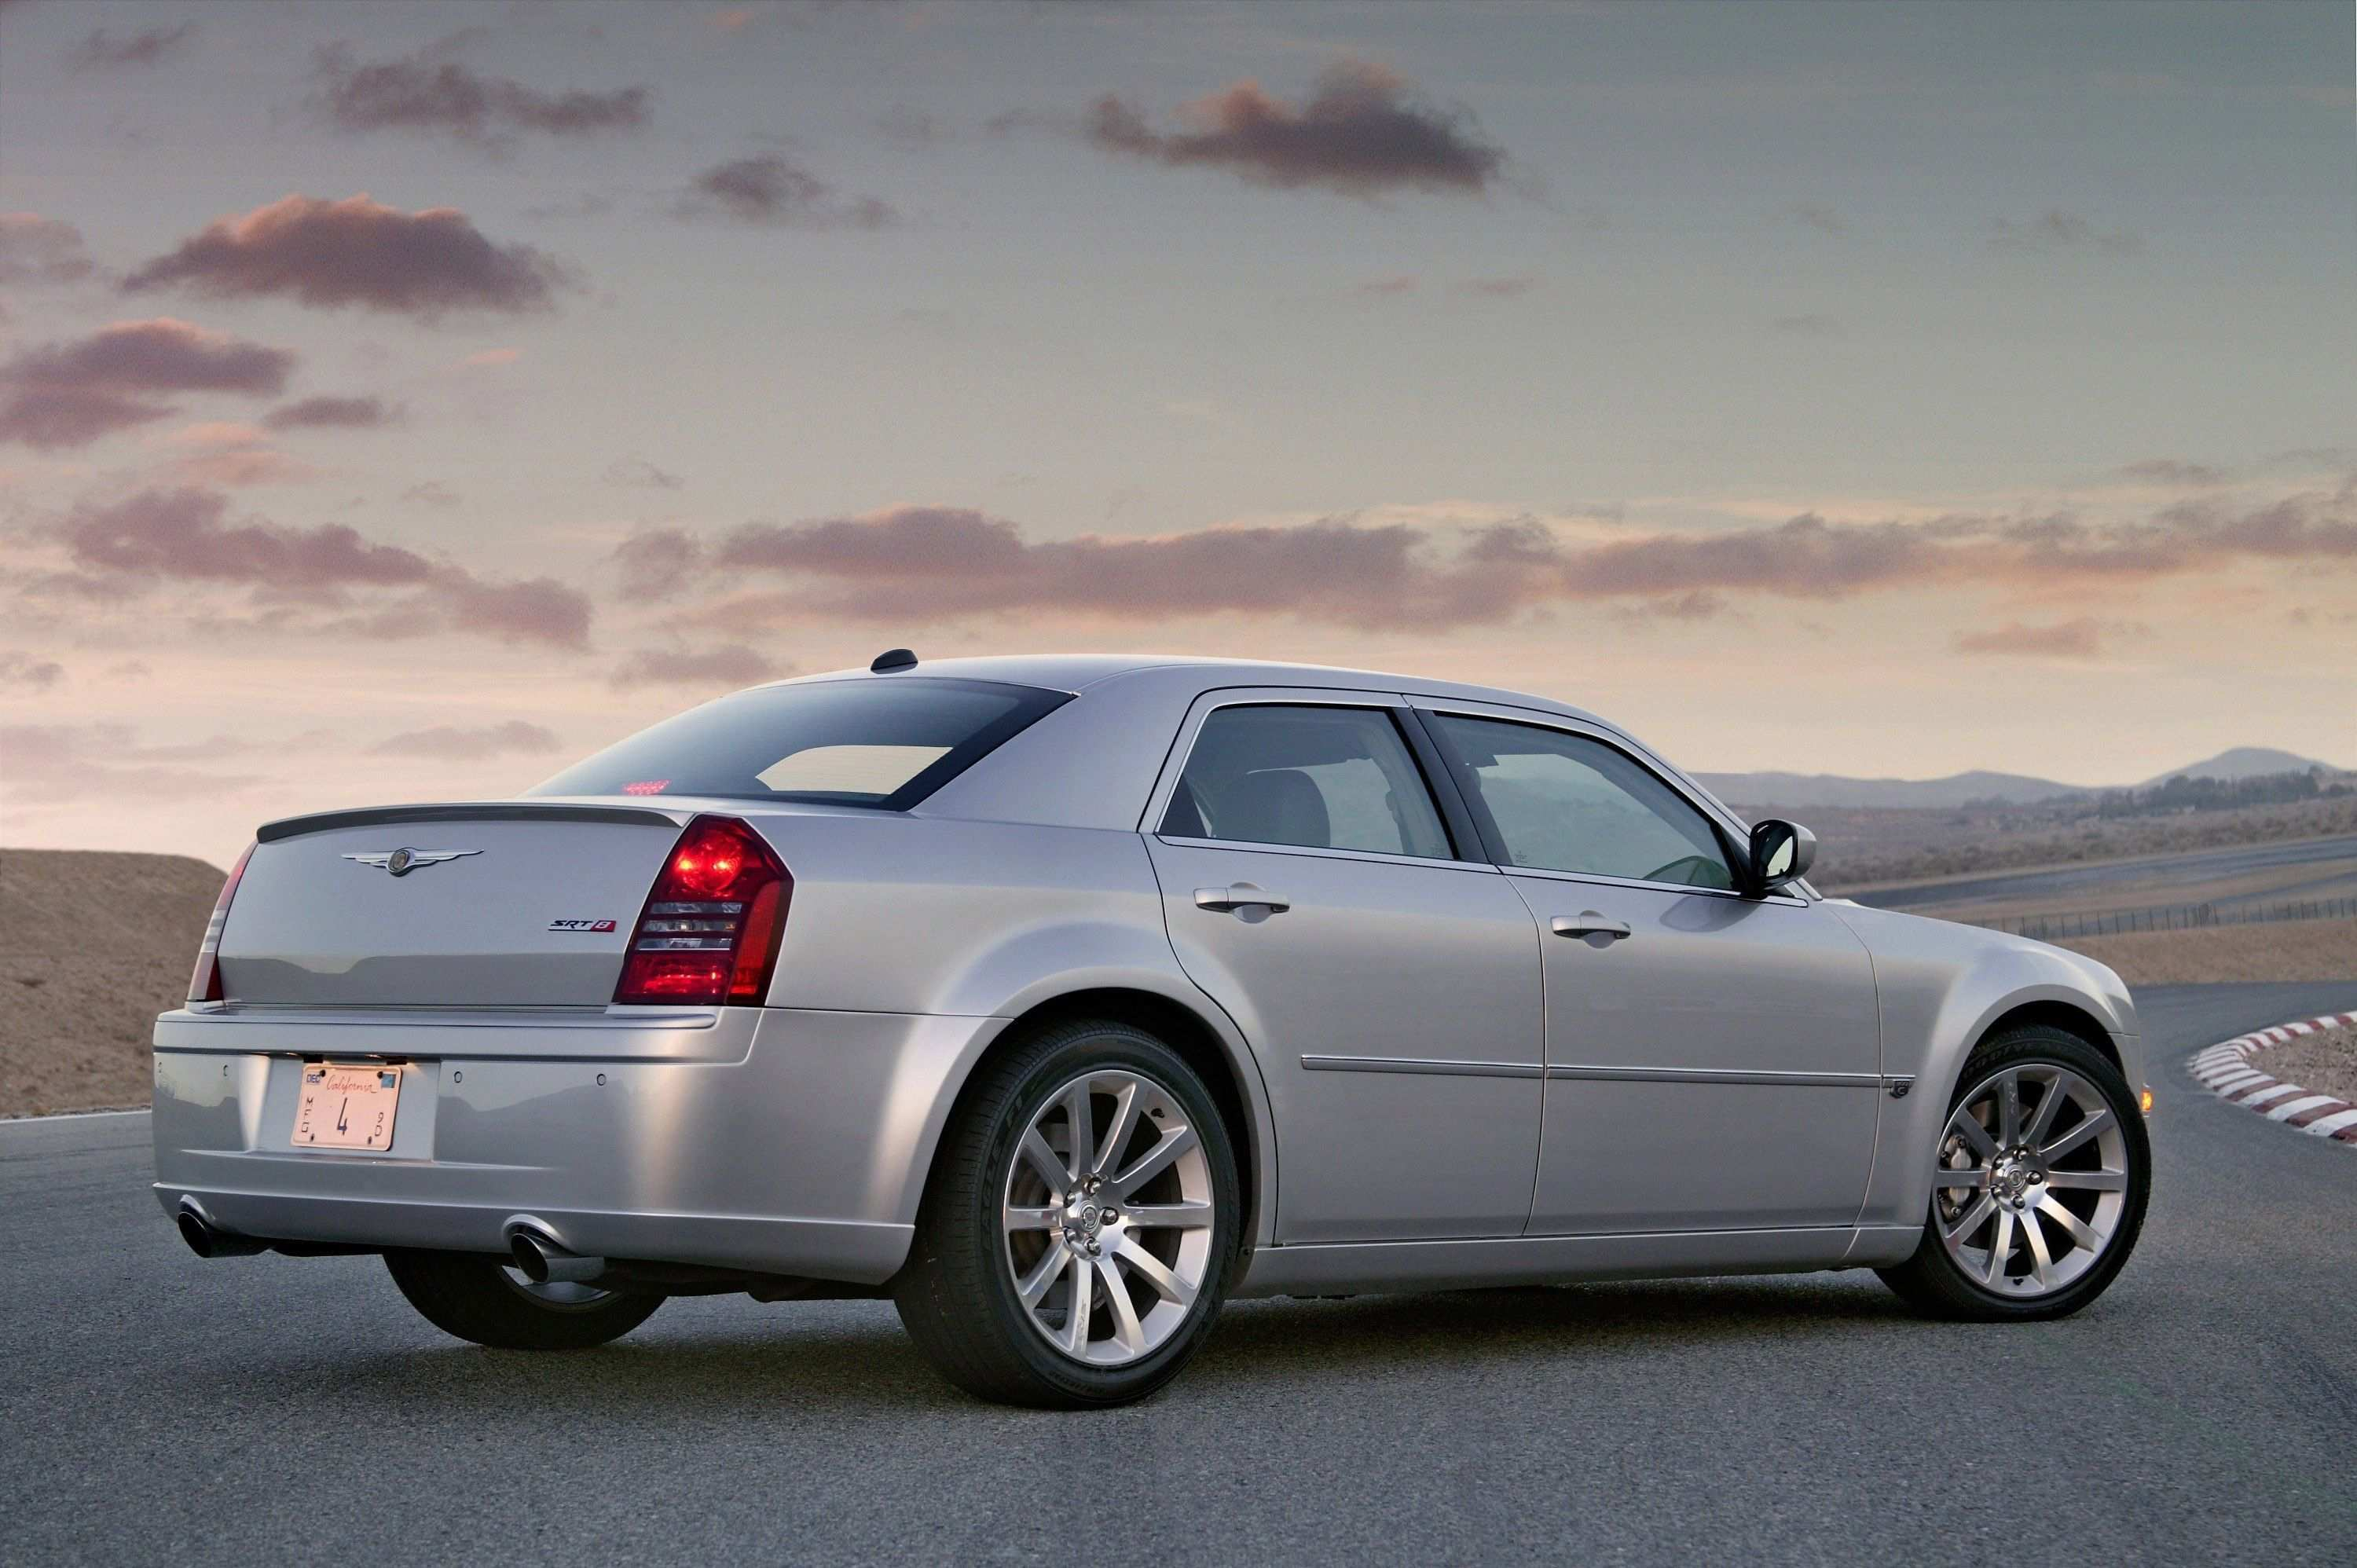 48 The Best 2020 Chrysler 300 Srt 8 Model